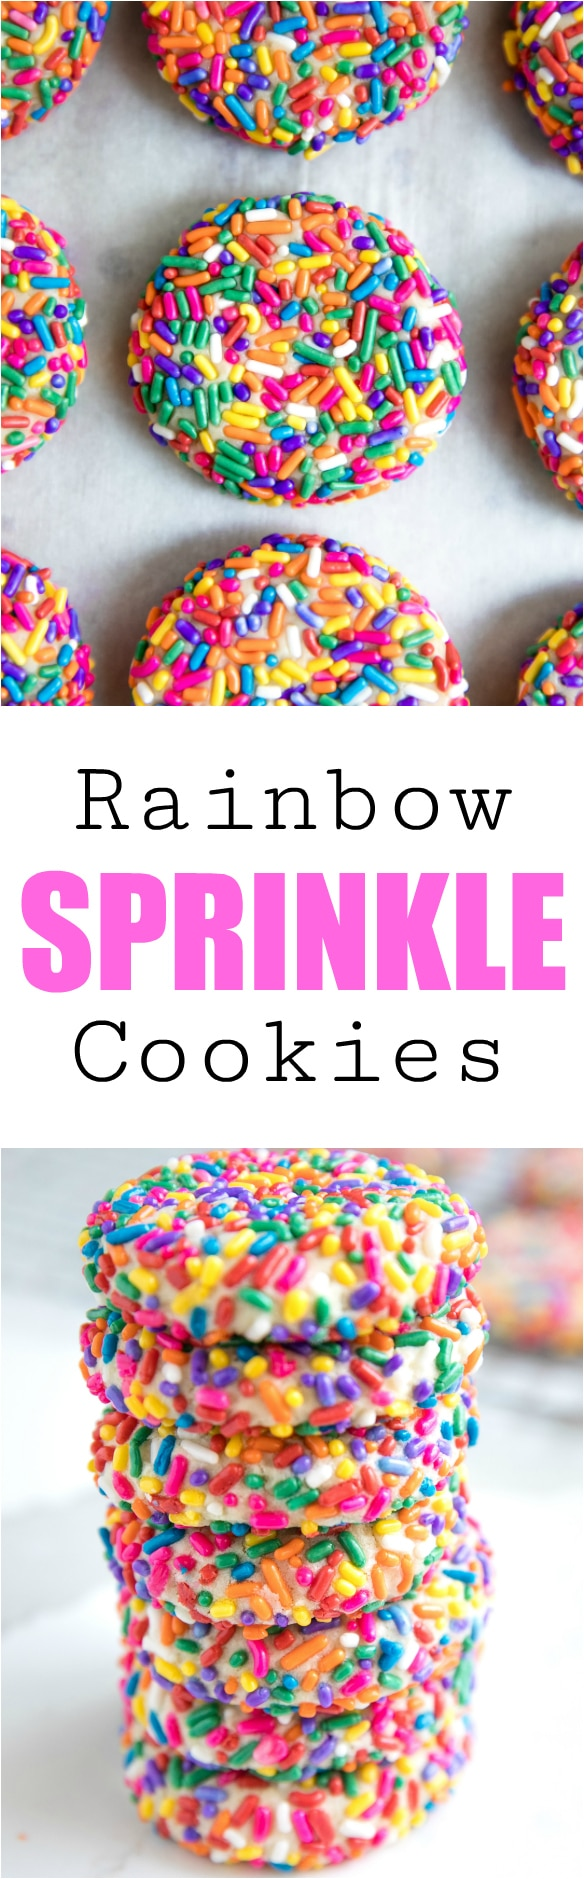 Sprinkle Confetti Cookies.  Life is always a little better with a side of cookies. Especially when those cookies are covered in rainbow sprinkles. Seriously, though, who doesn\'t love a good Sprinkle Confetti Cookie? #cookies #rainbows #sprinkles #dessert #fun